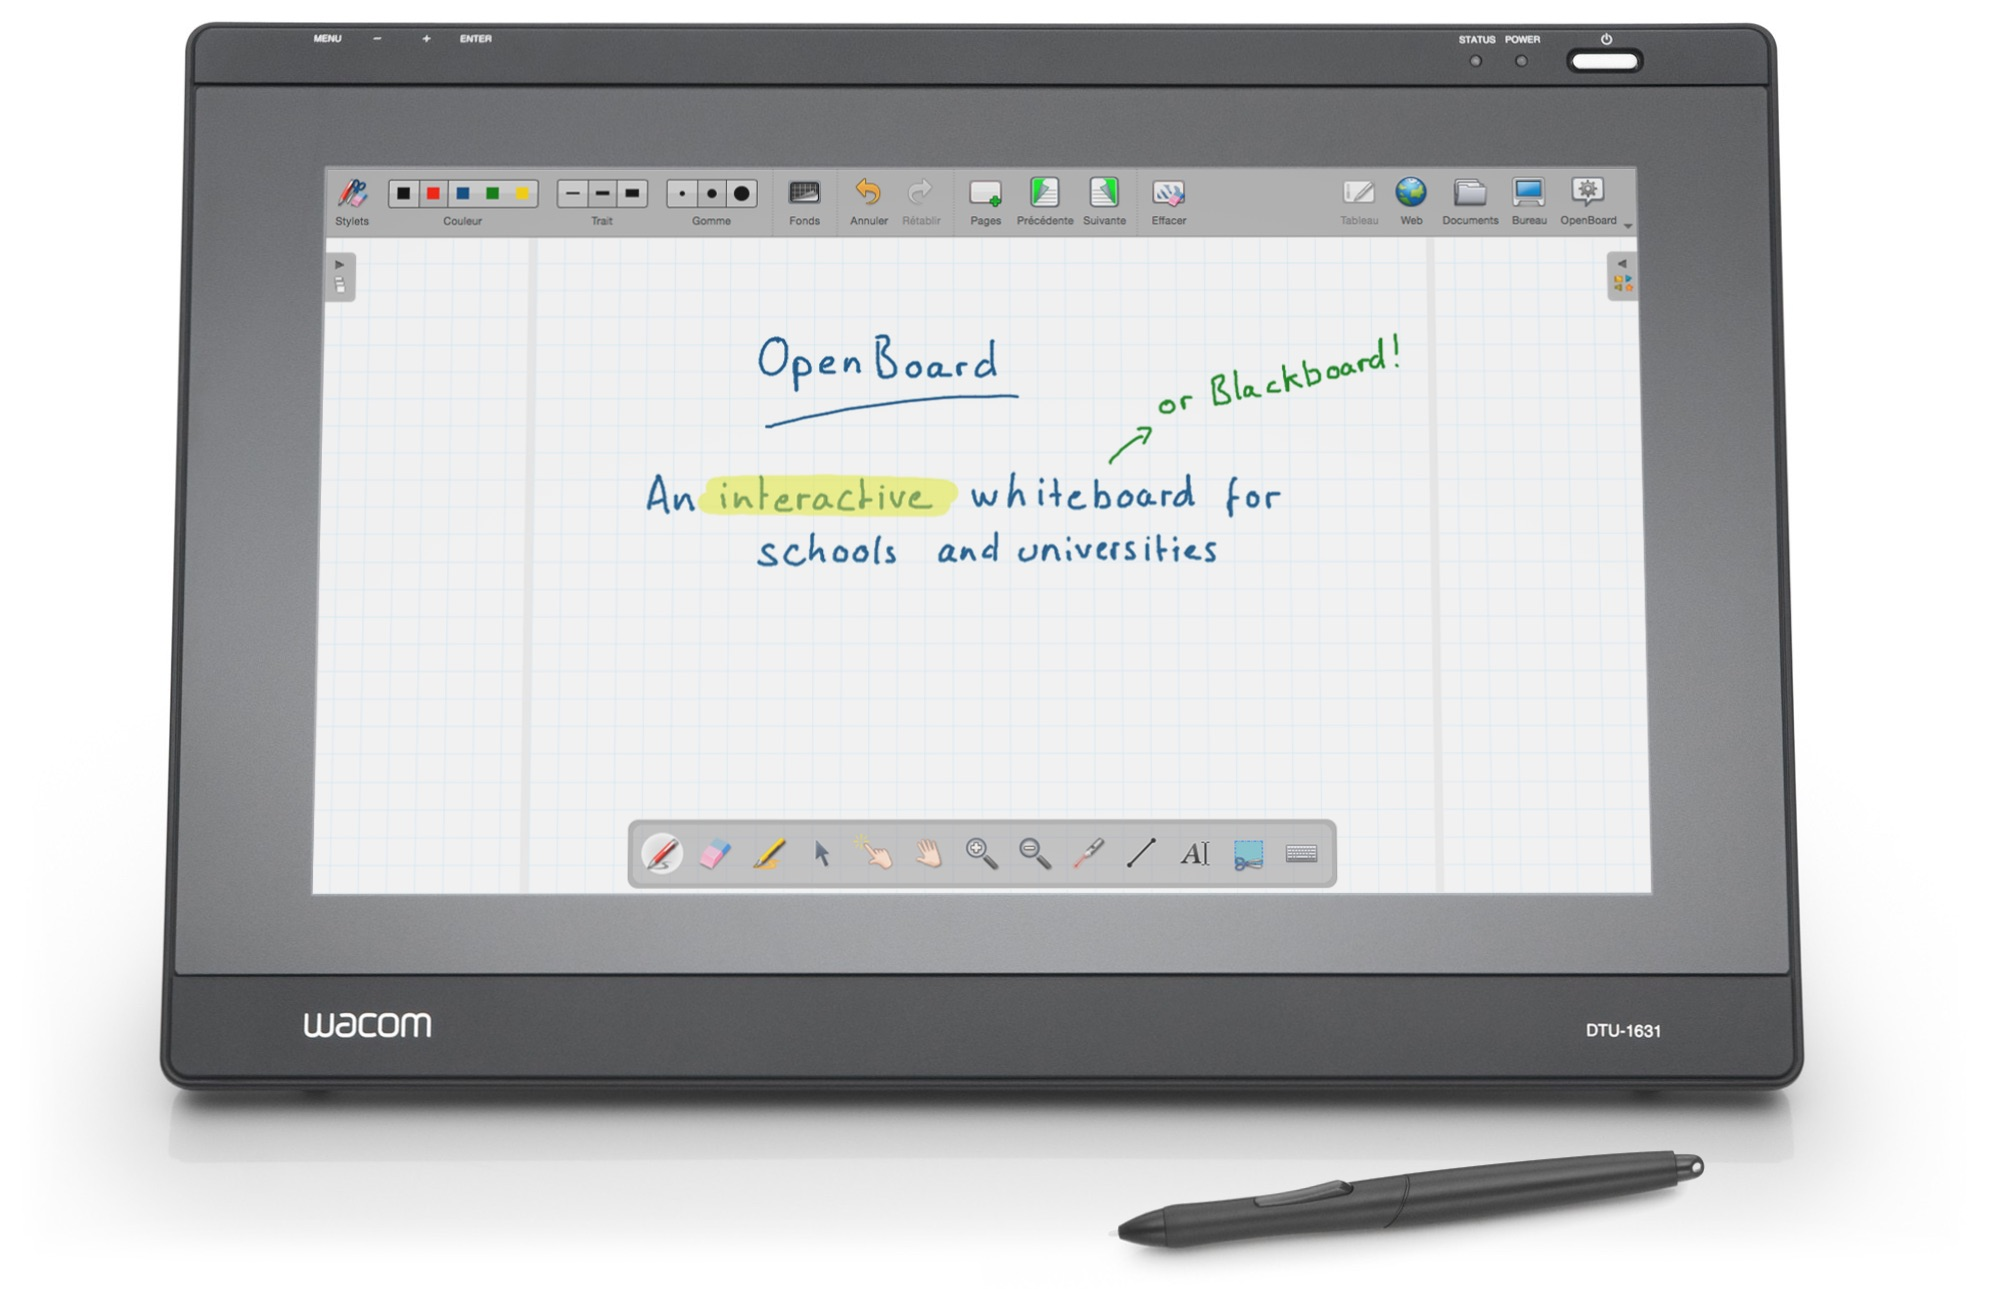 OpenBoard, the best interactive whiteboard for schools and